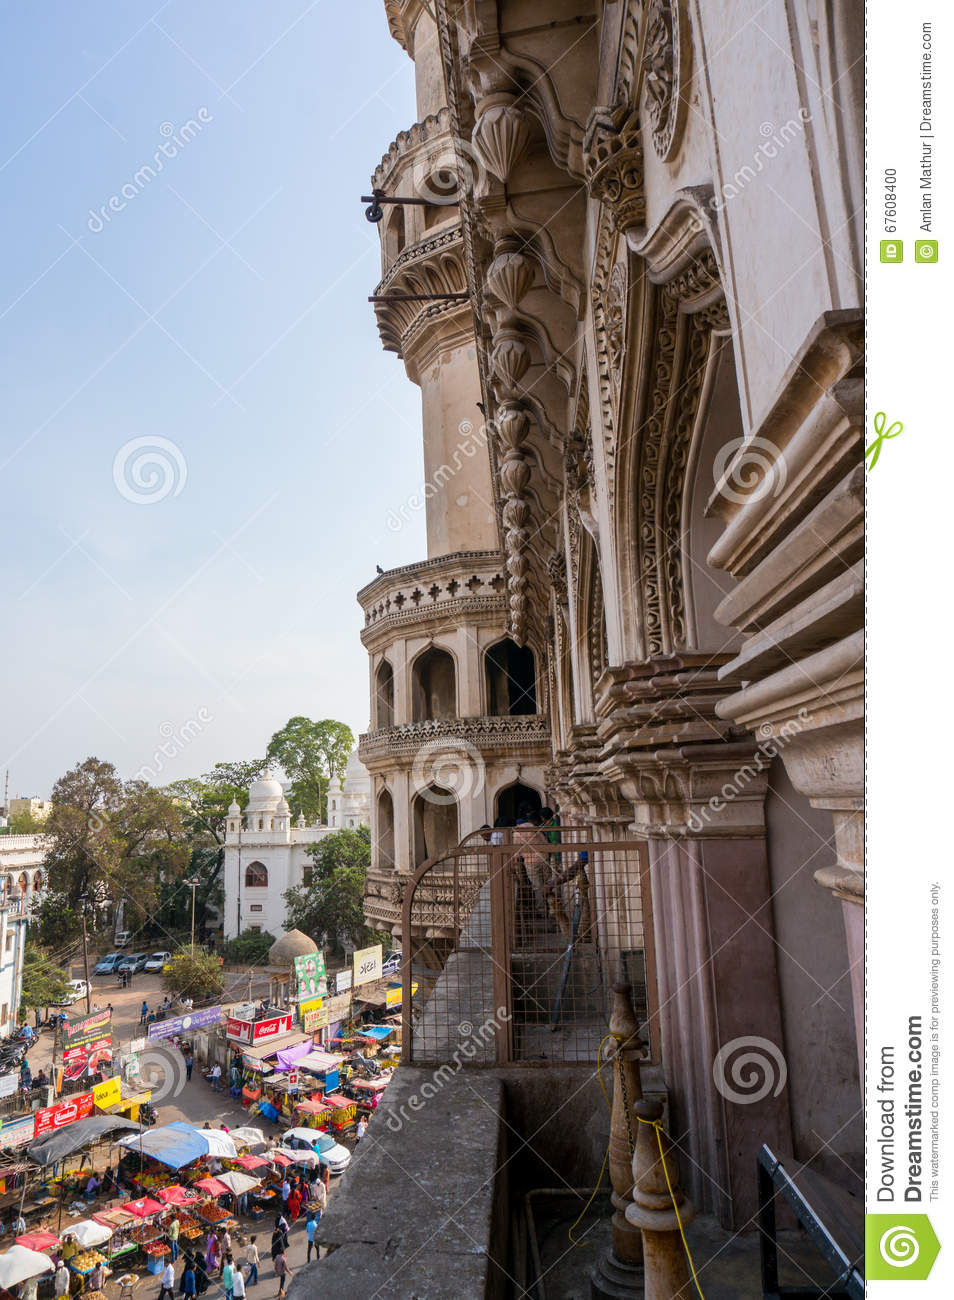 Architecture of charminar hyderabad editorial image for Architecture interior design hyderabad telangana